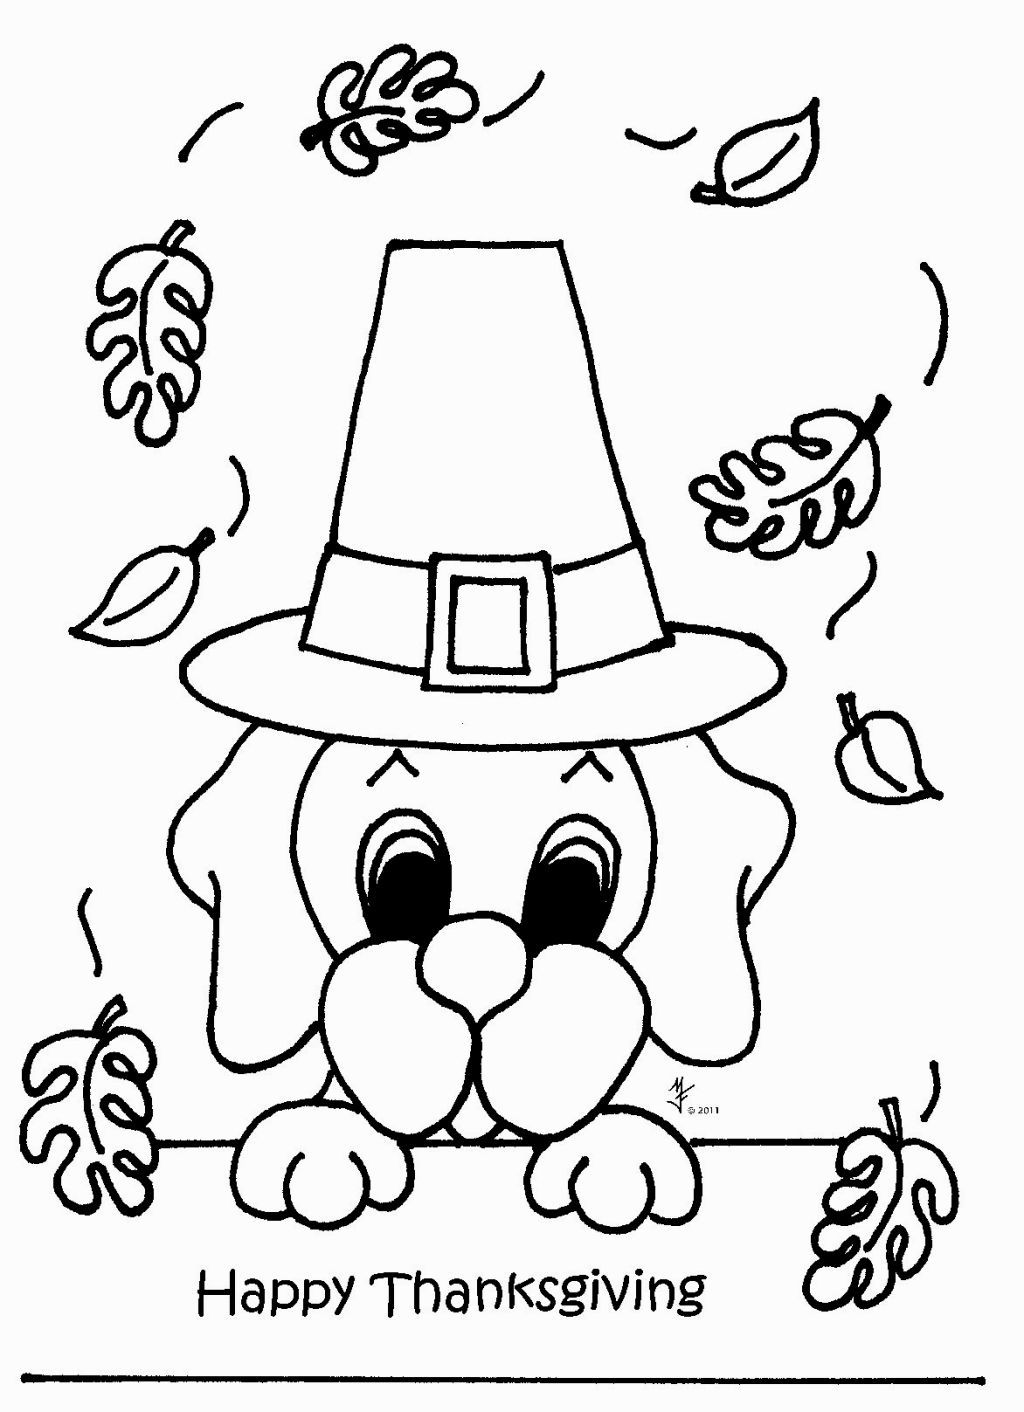 November Coloring Page Free thanksgiving coloring pages